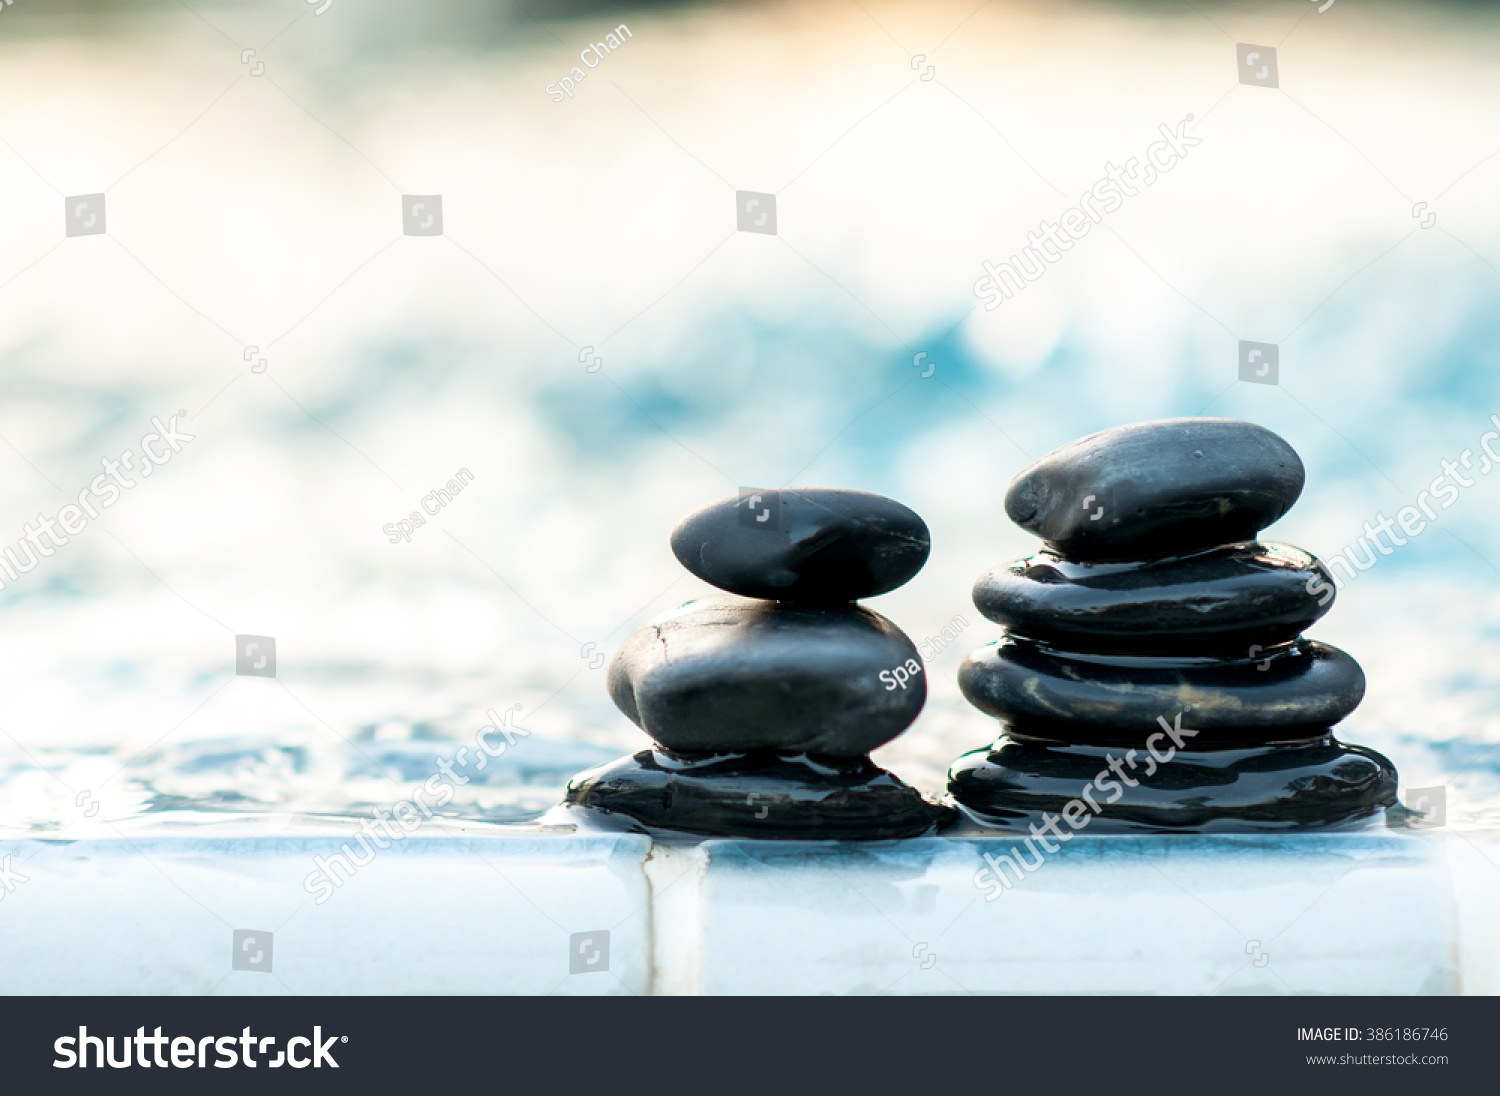 Zen Photography Water Spa Still Life Water L...